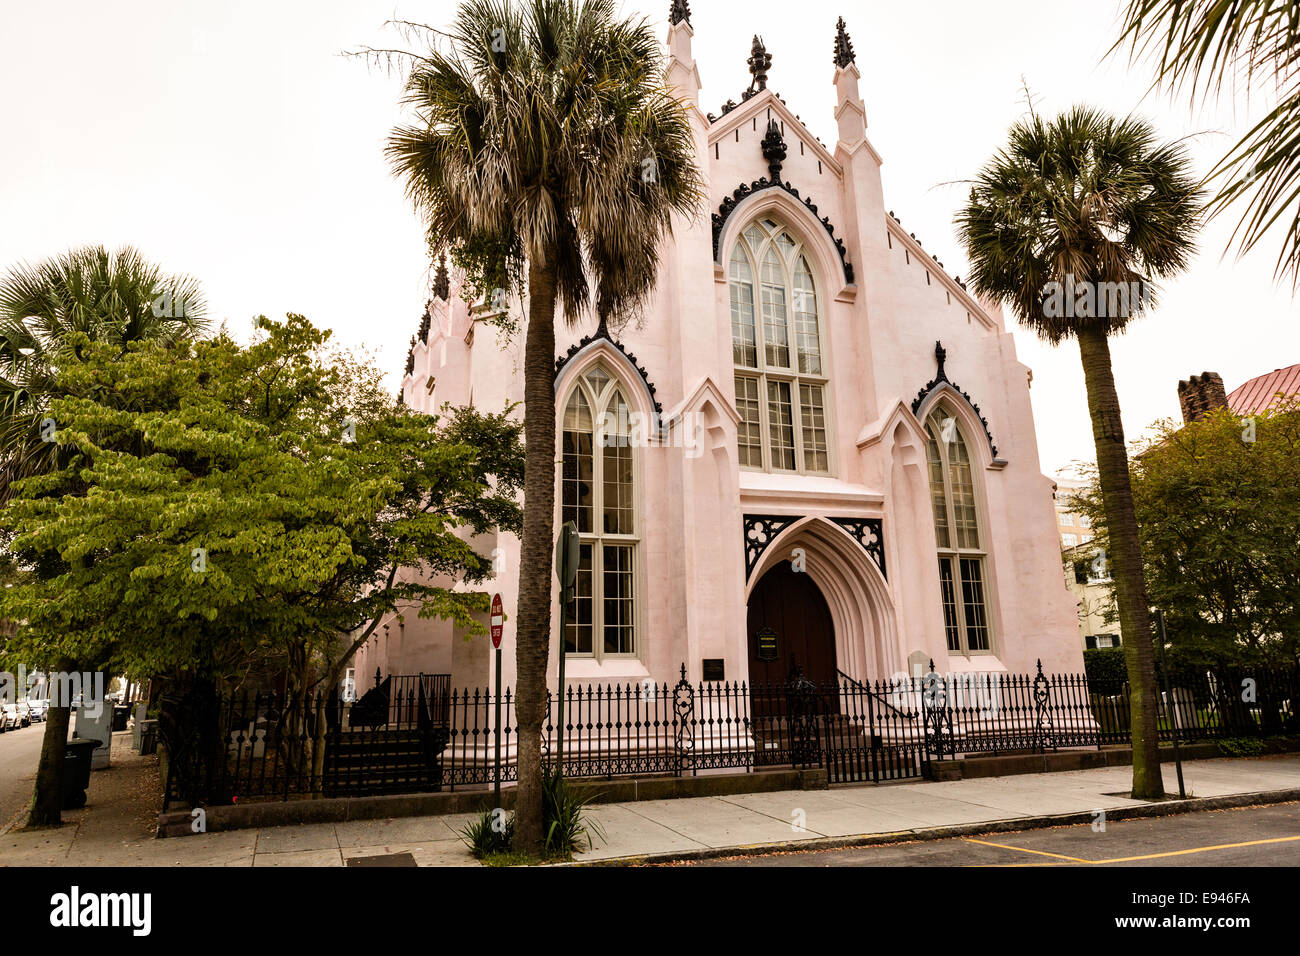 The pink French Huguenot Church in the French Quarter along Church Street in historic Charleston, SC. - Stock Image